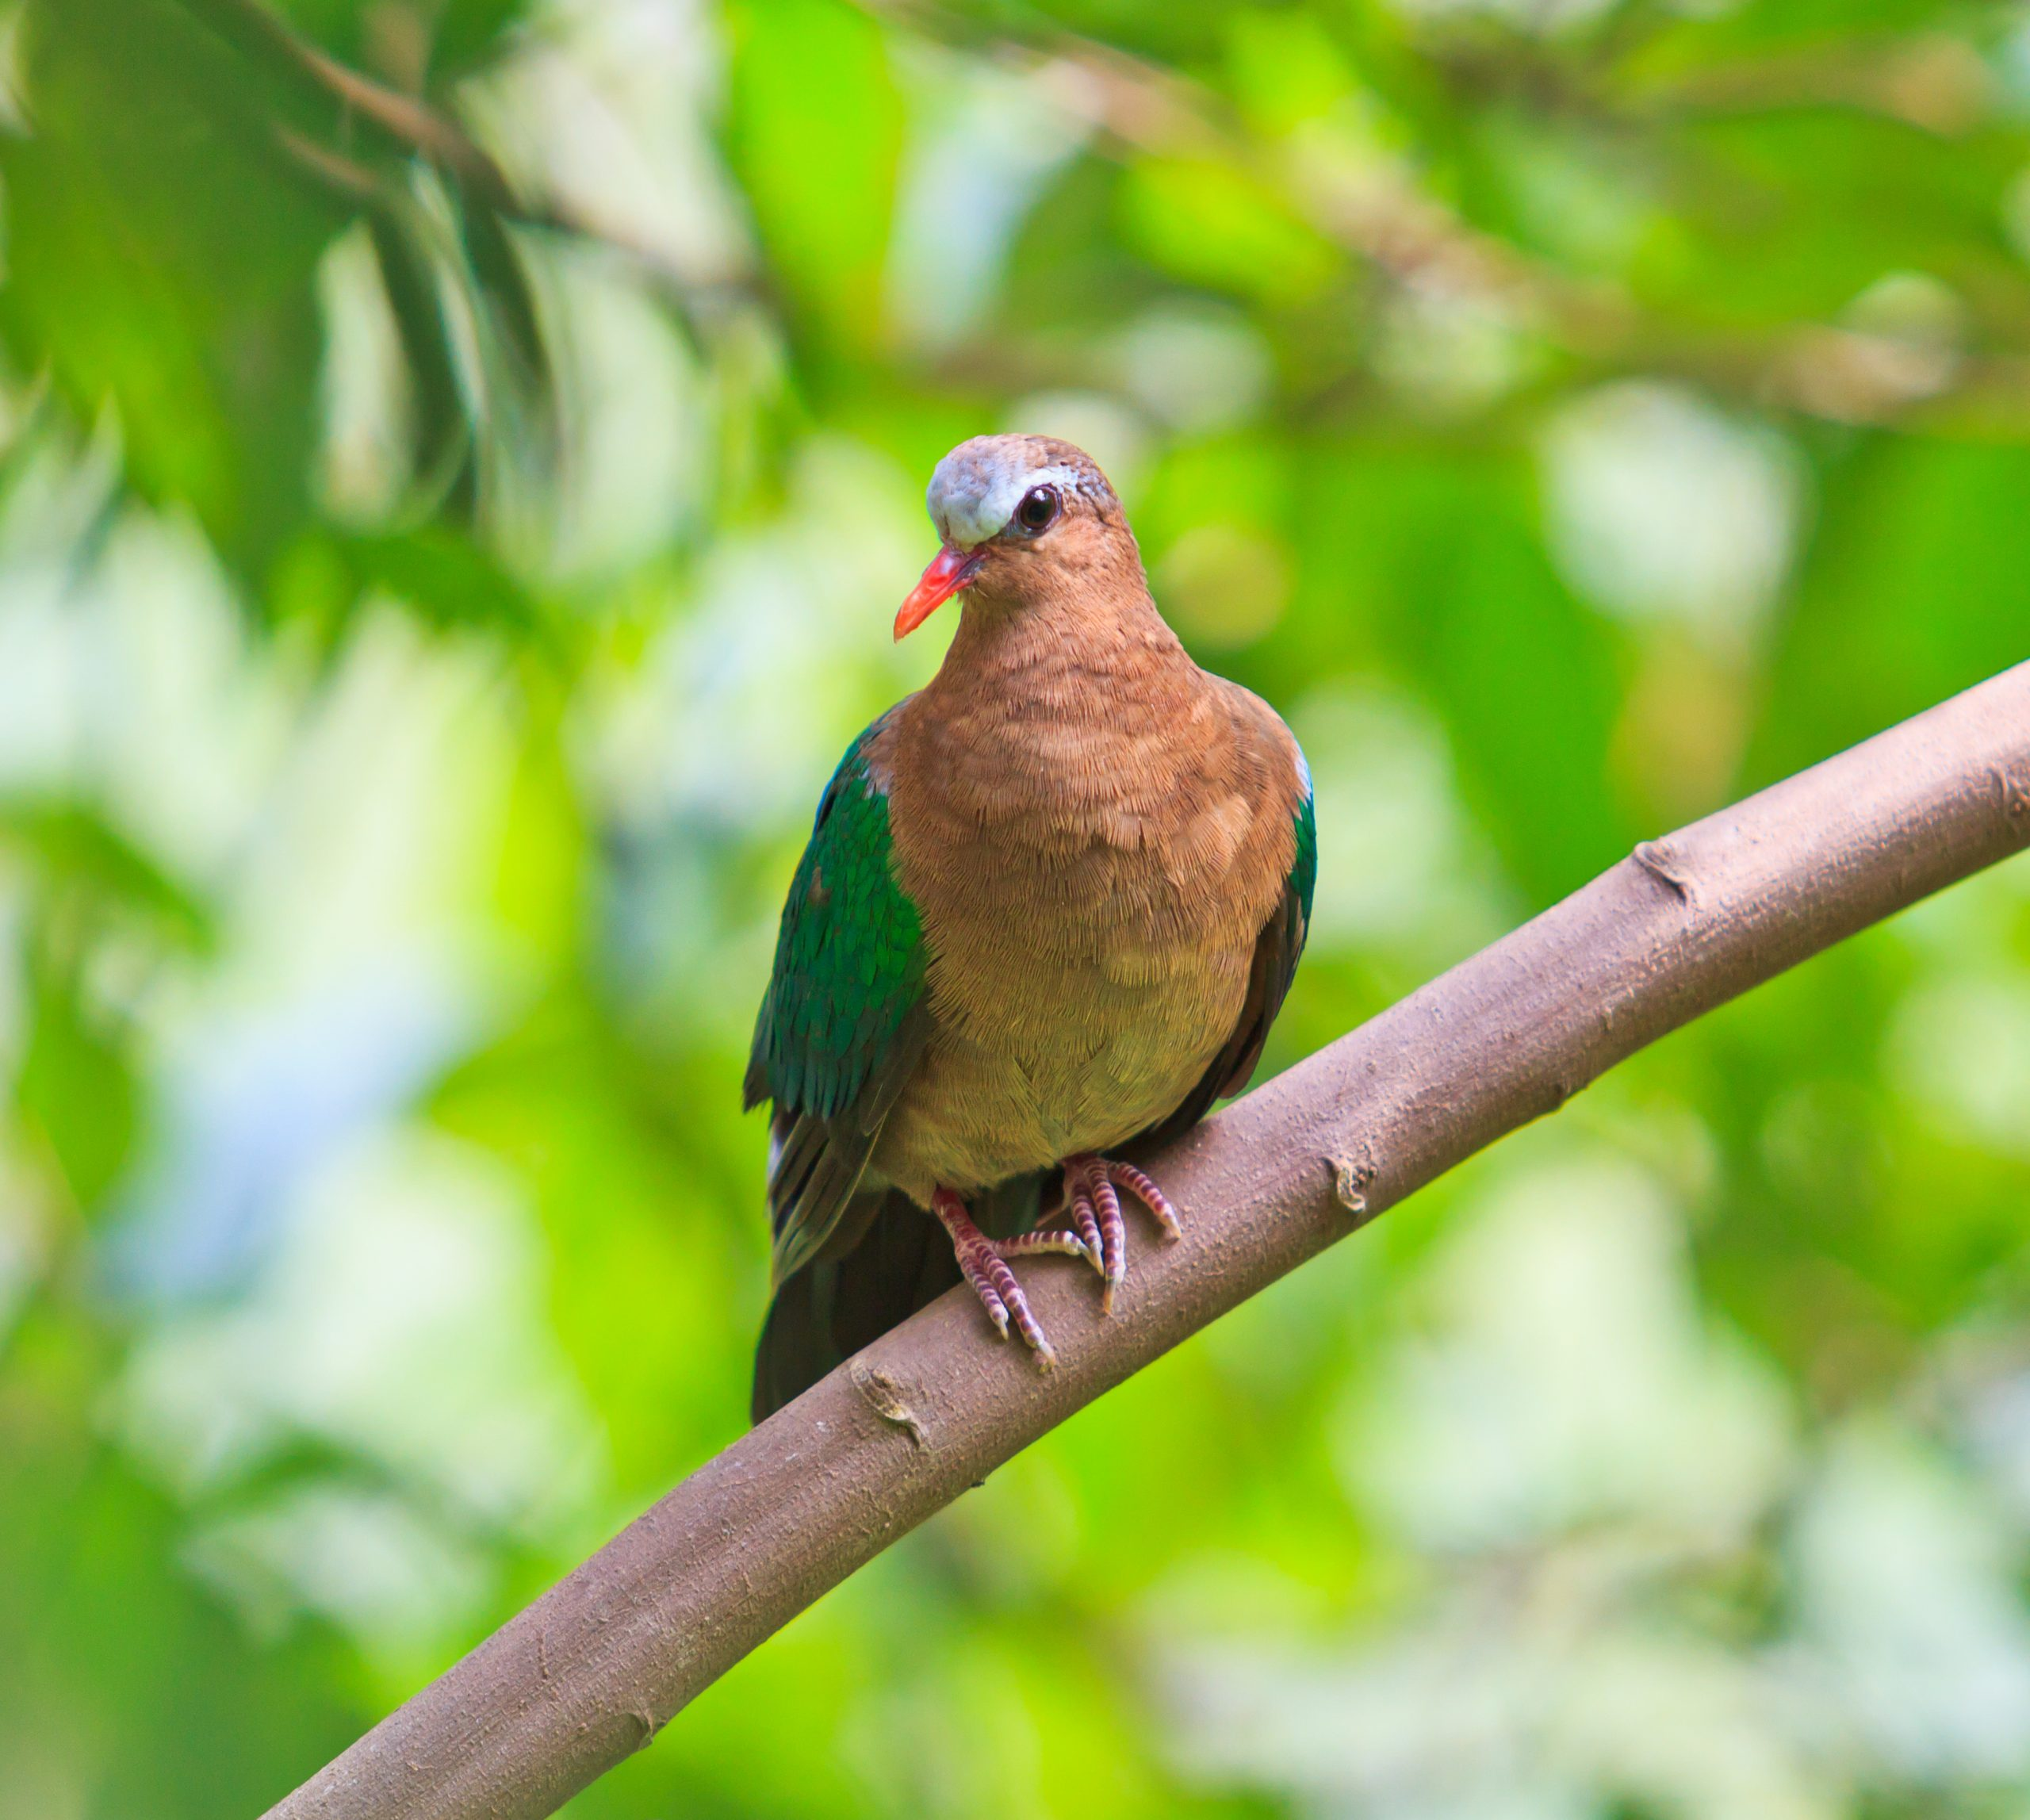 A Green-winged Dove perched on a branch